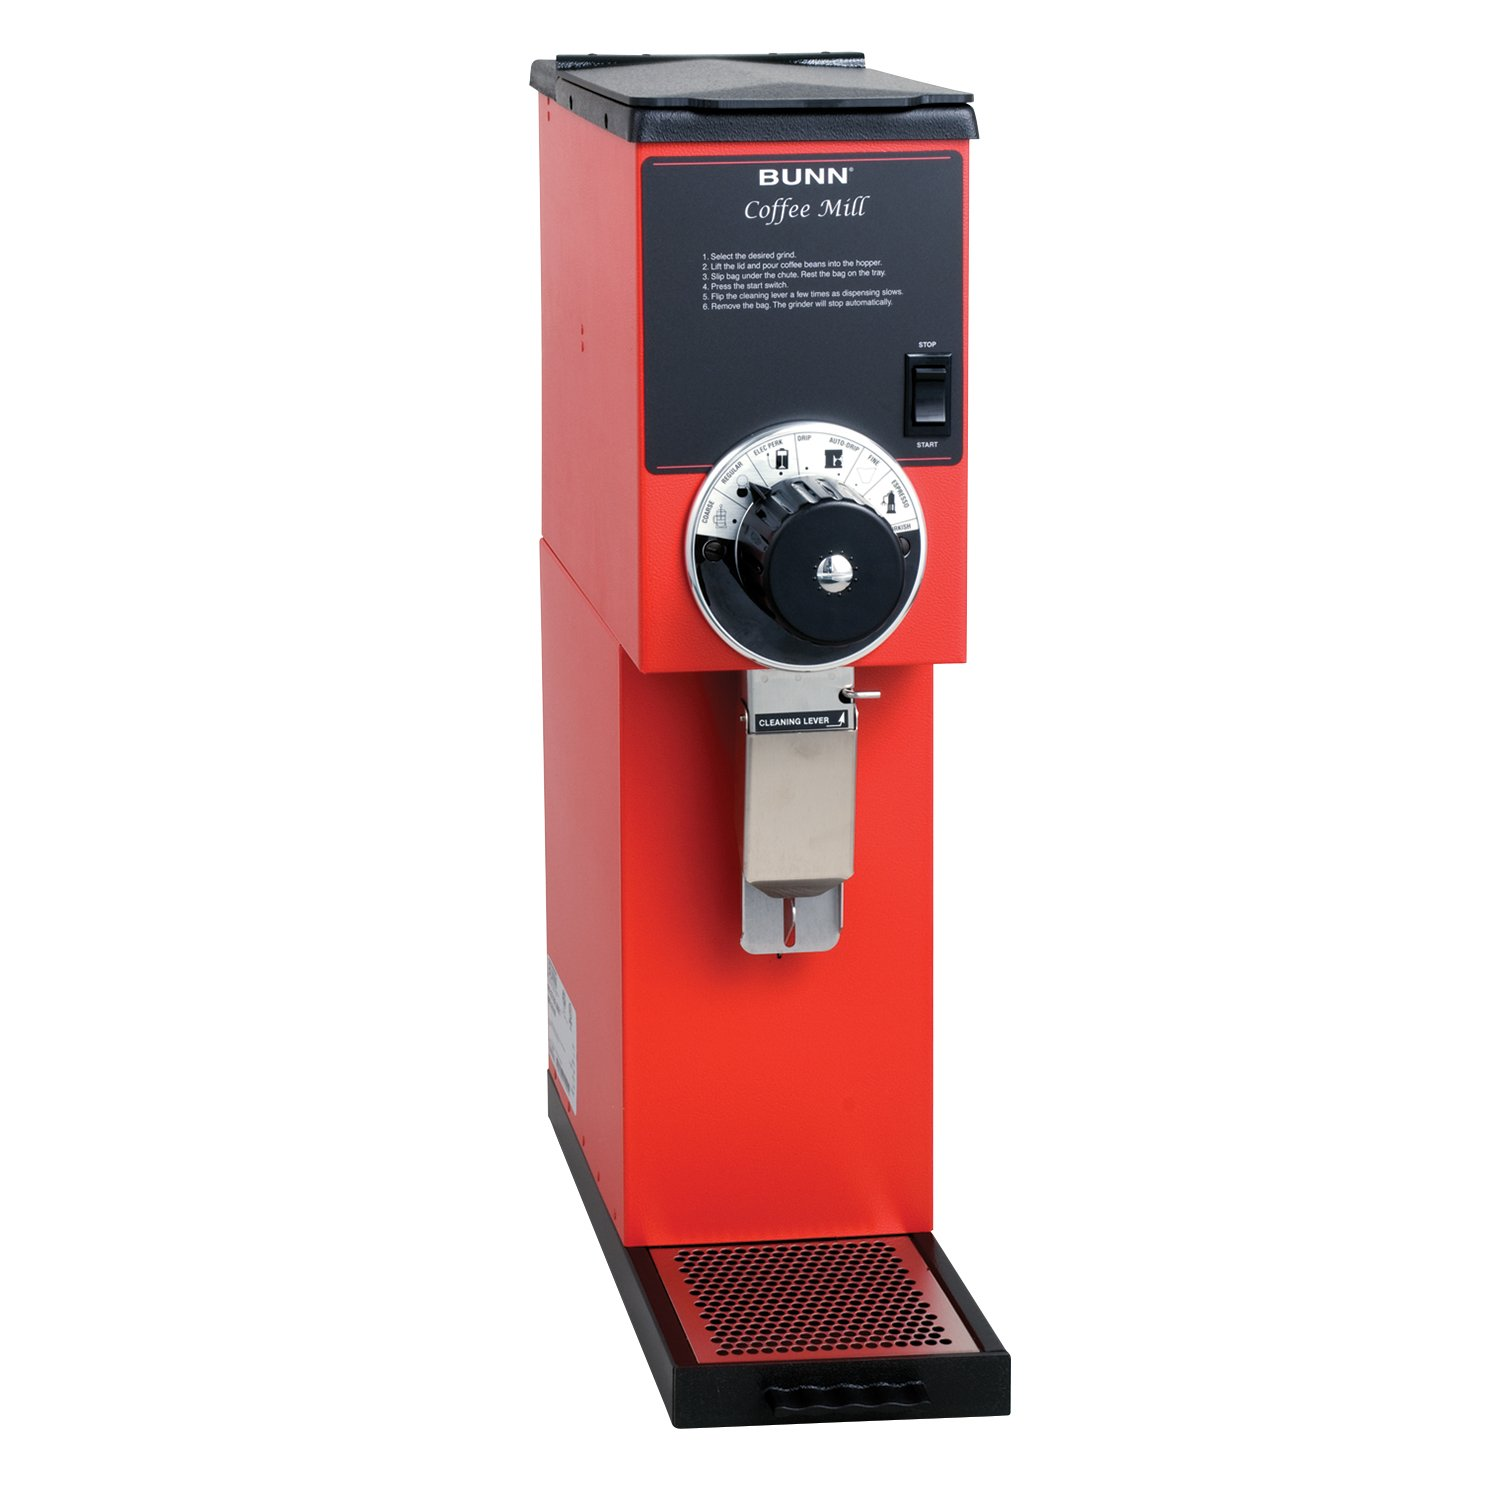 BUNN 22102.000100000001 G2 Bulk Coffee Grinder, Red